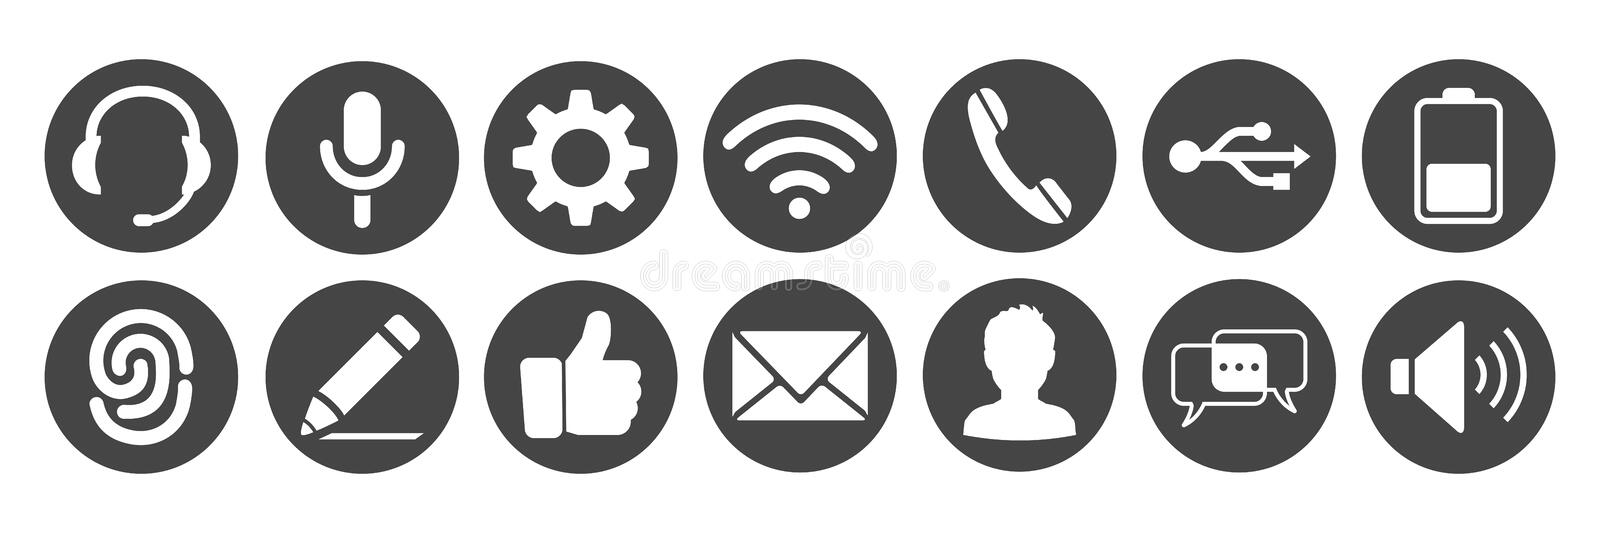 Set icons for phone - vector royalty free illustration